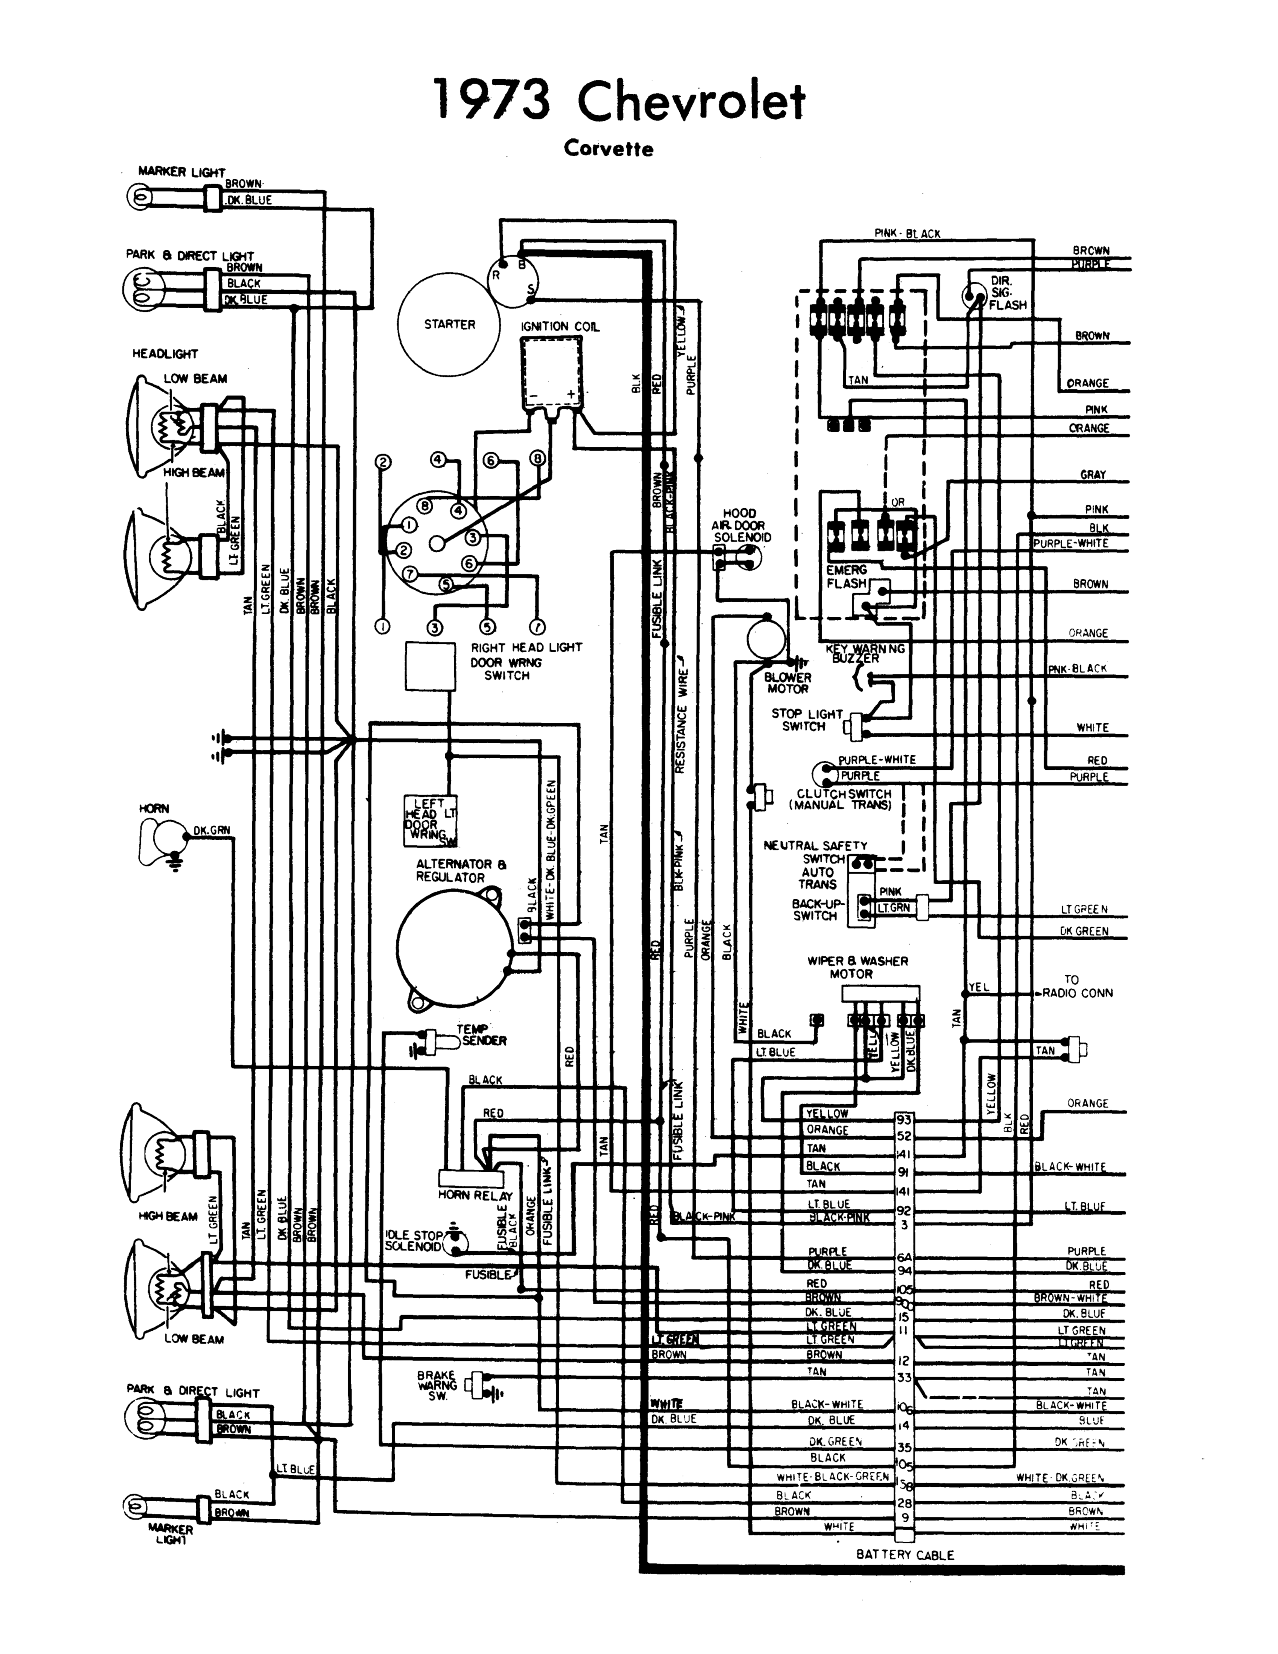 Chevy C10 Wiring Diagram 2 1967 1972 72 Chevy Truck Chevy S10 Chevy Trucks